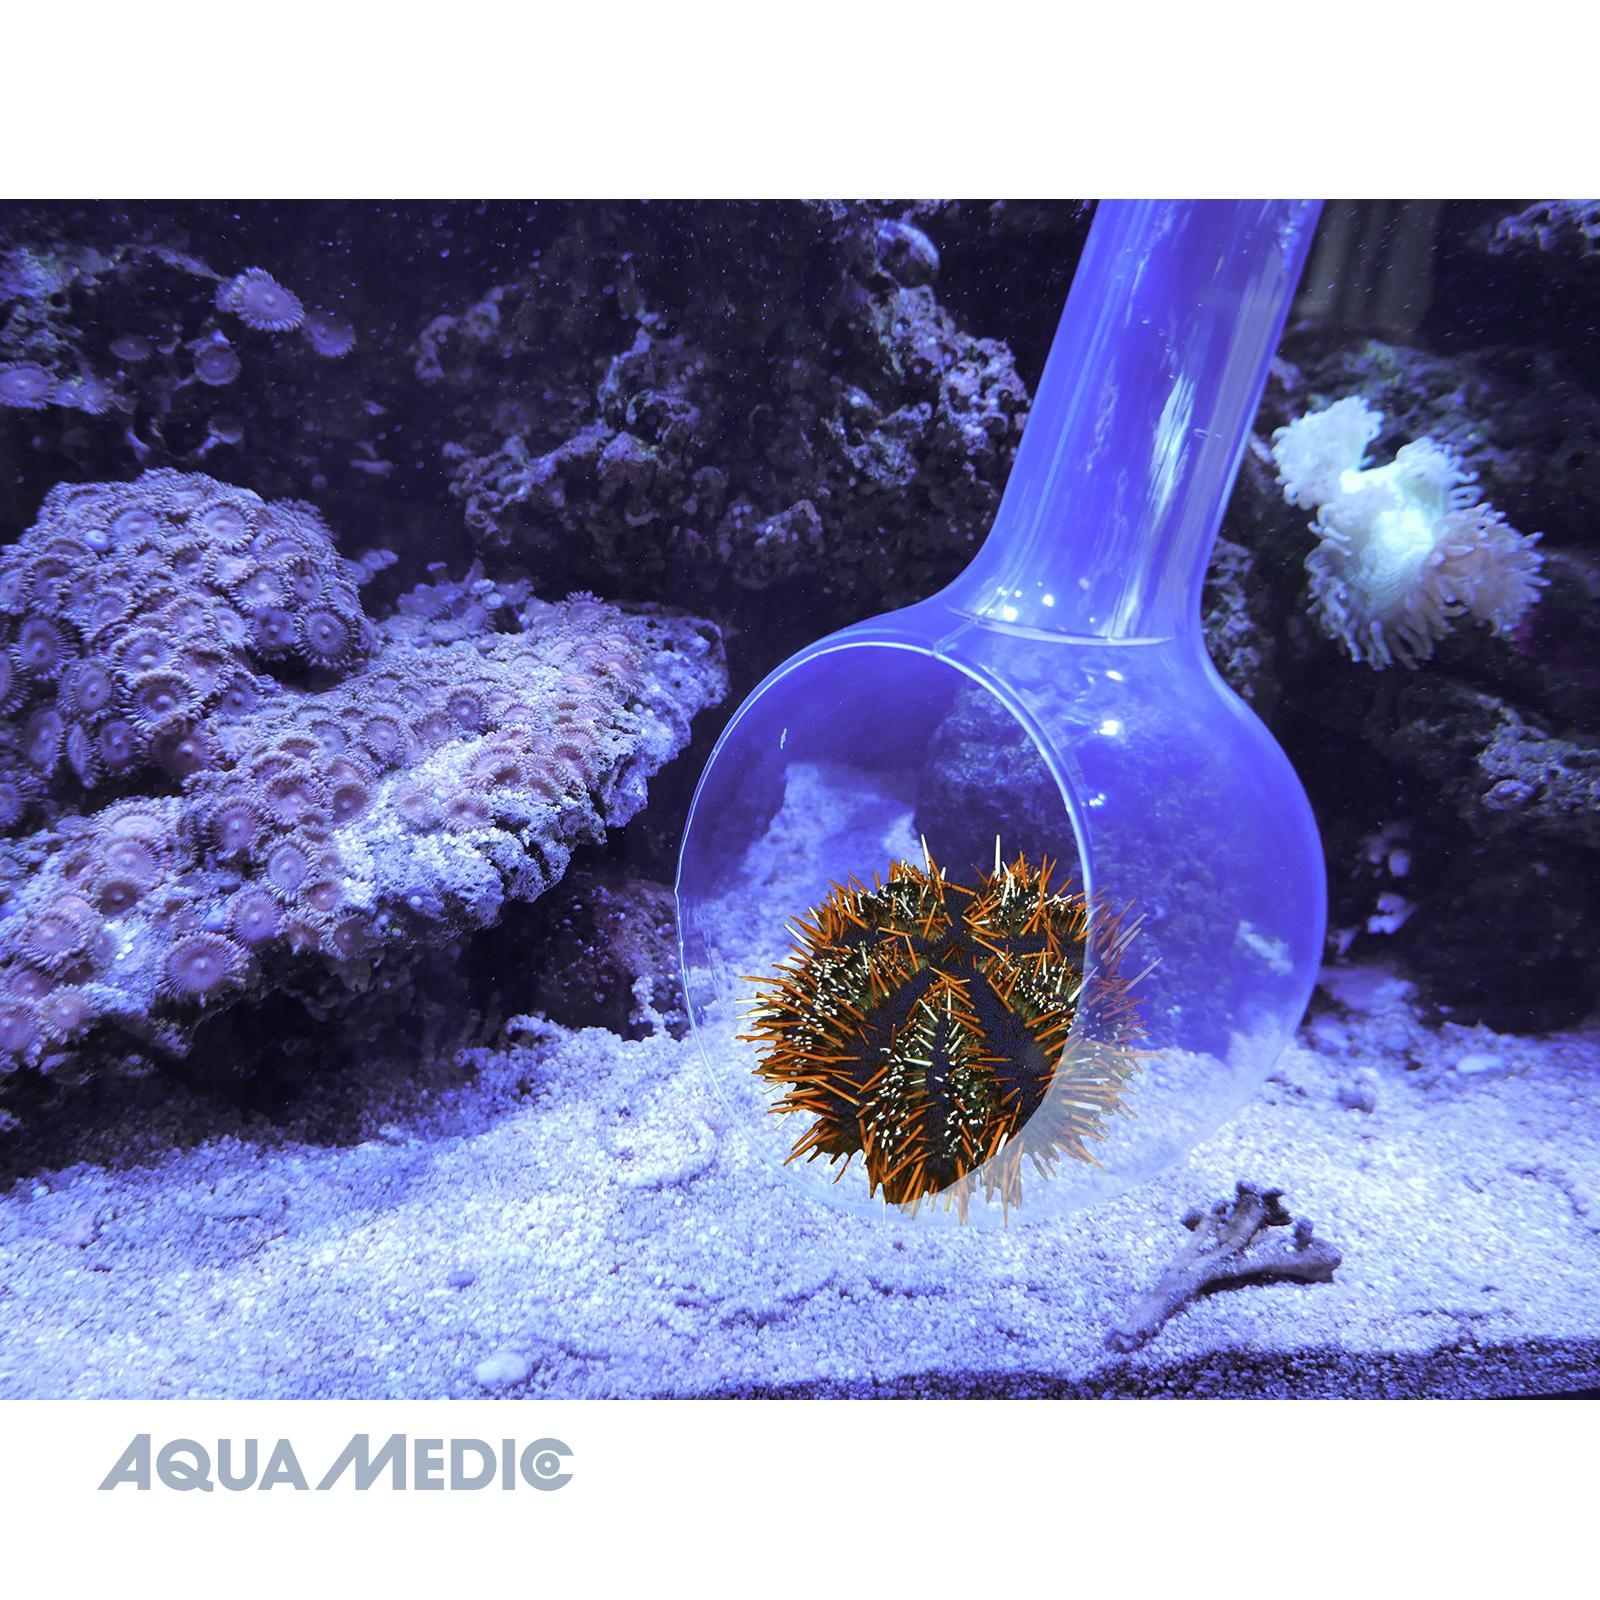 Aqua Medic catch bowl